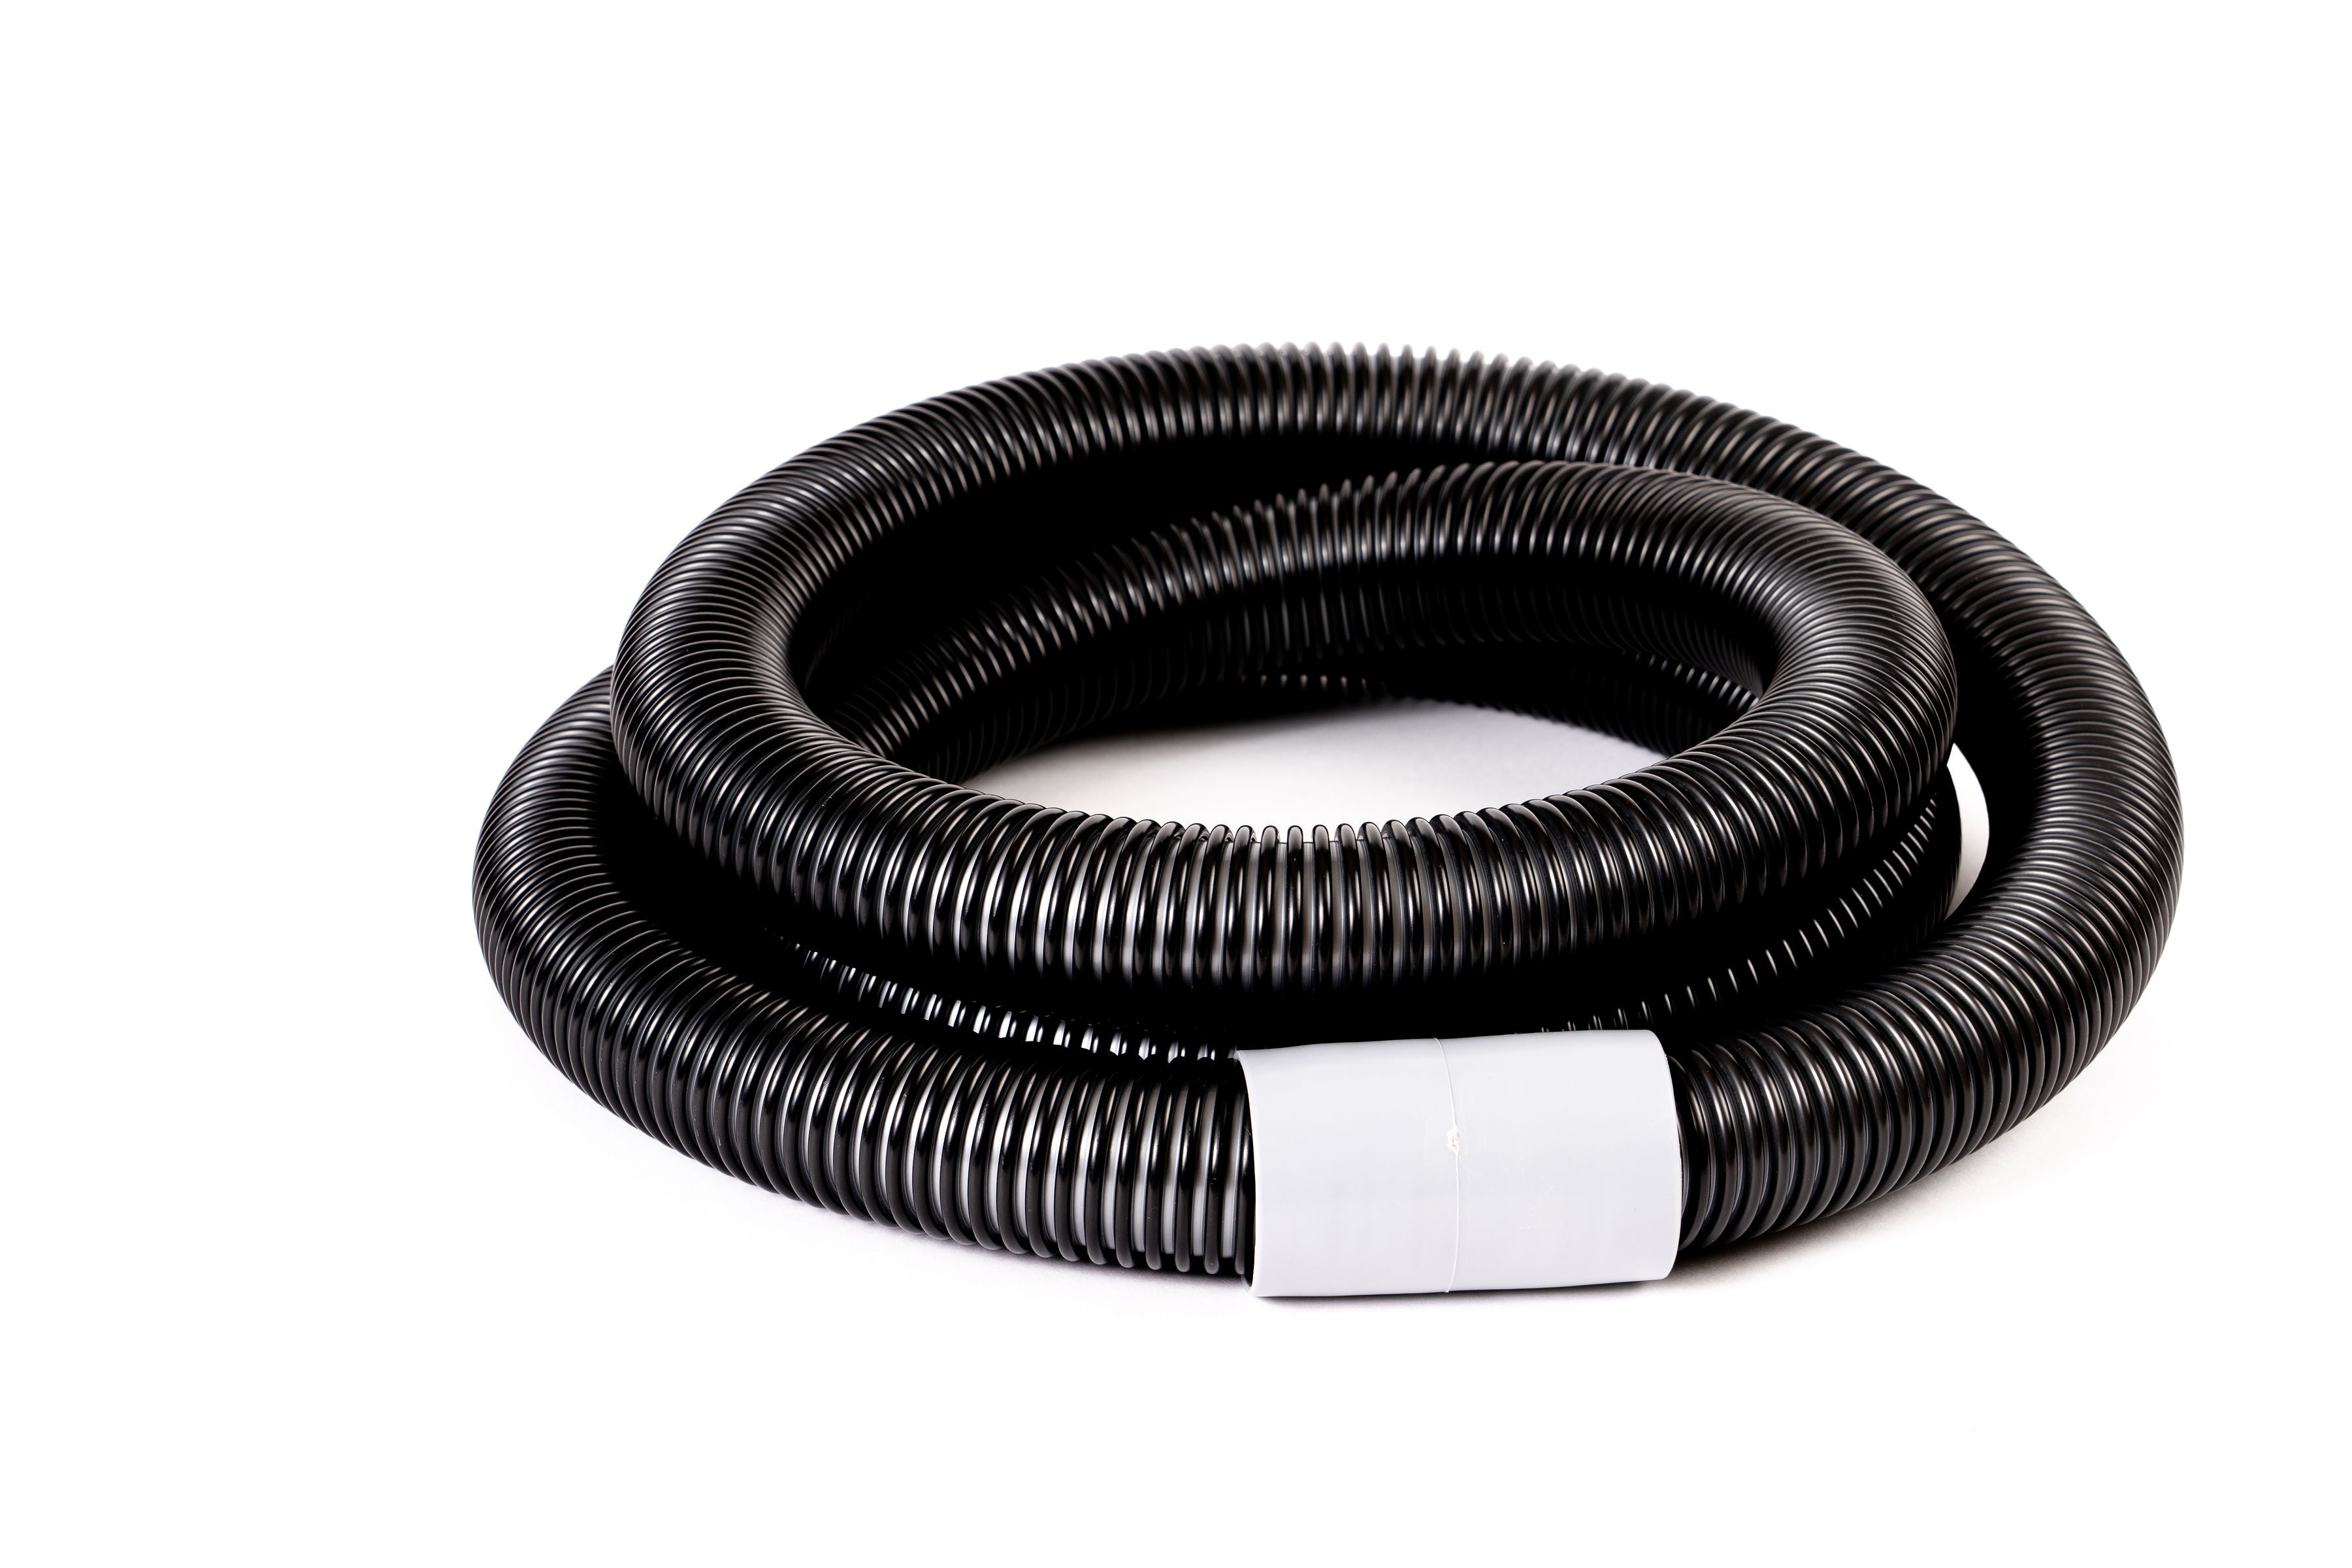 Heavy Duty Hose Extension Kit - MVC-56D184